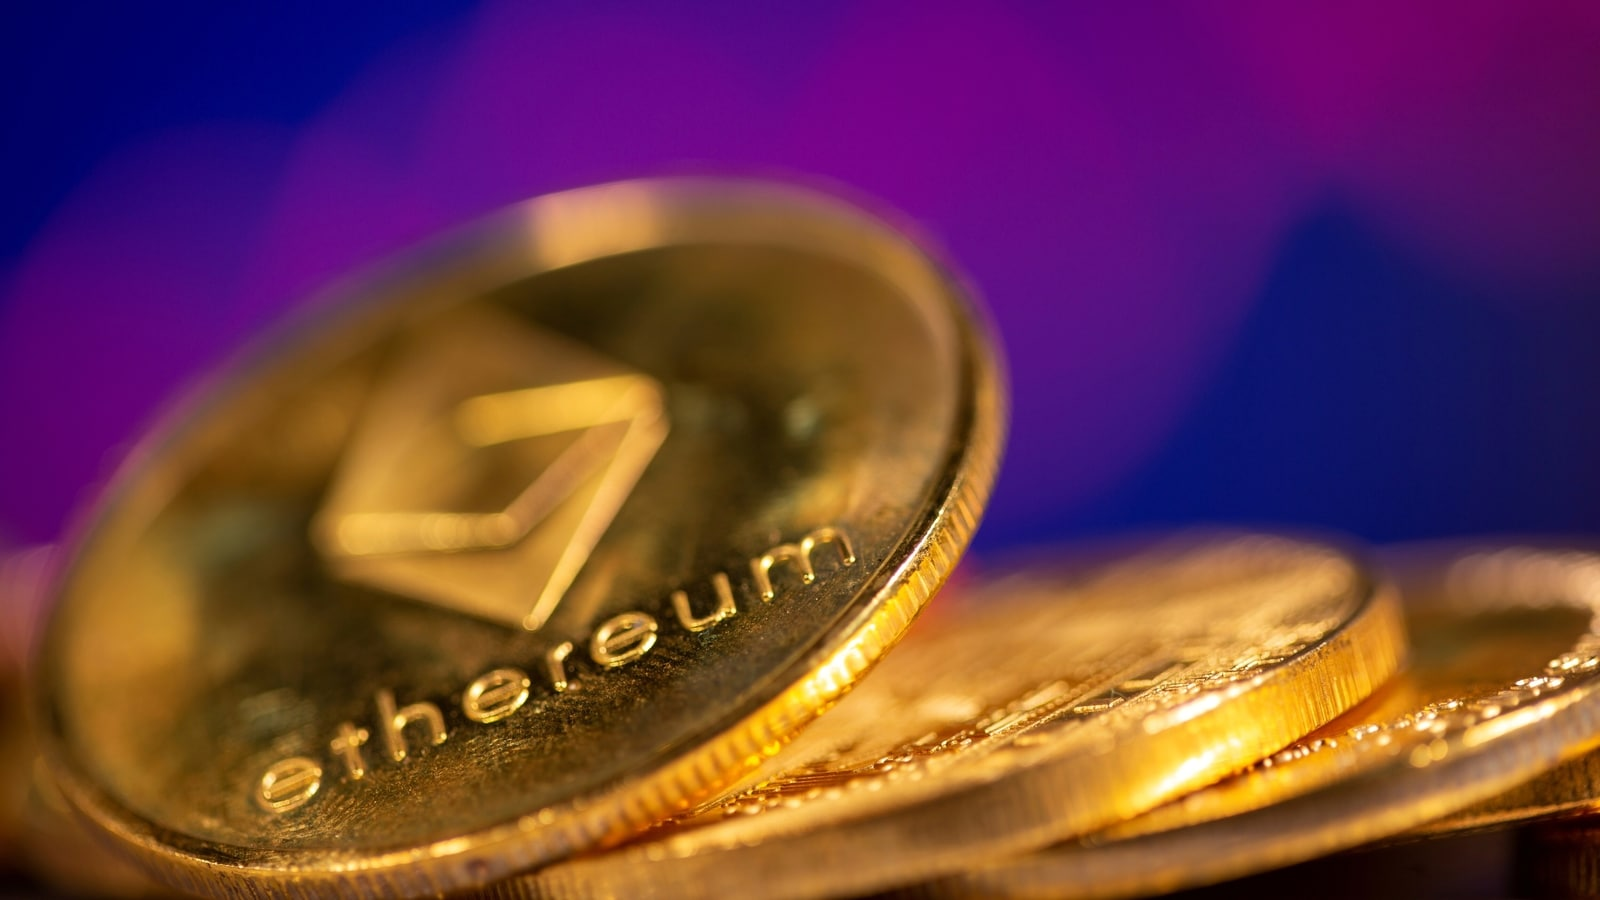 Norton Crypto allows customers to access Ethereum and add online cryptocurrency